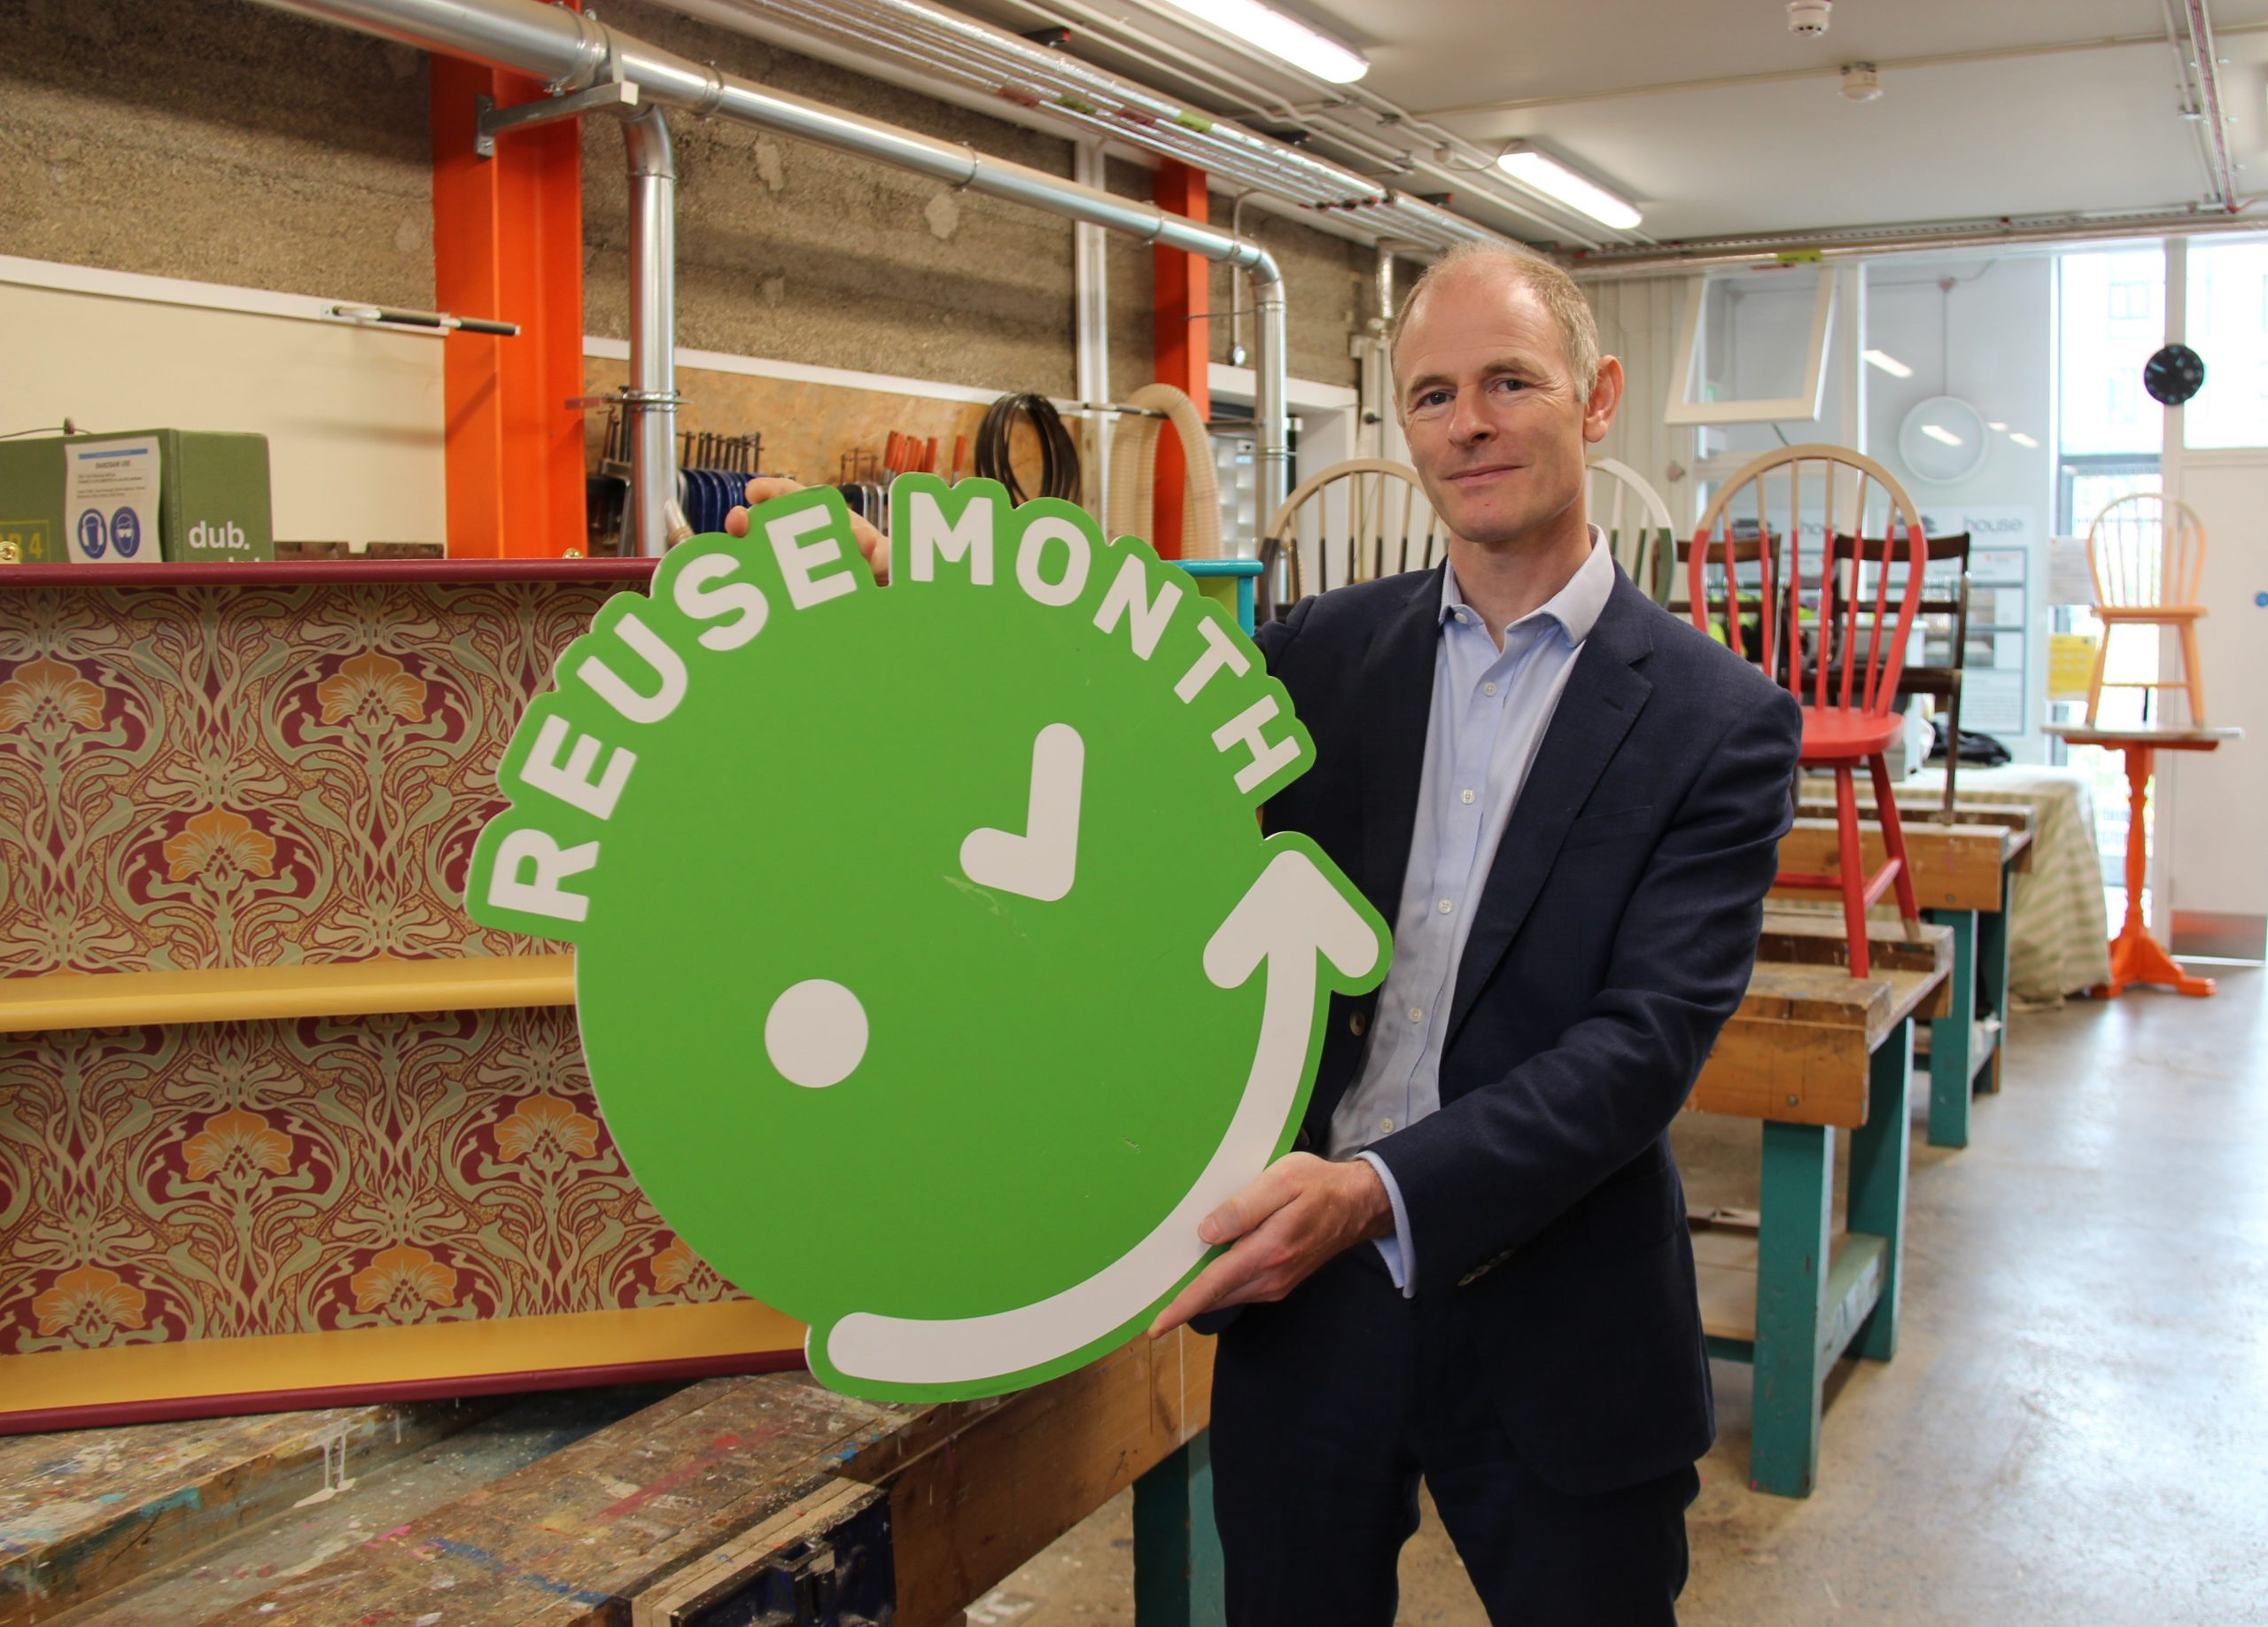 Reuse Month 2021 Ossian Smyth TD, Minister with responsibility for the Circular Economy launches Reuse Month 2021 amid an array of upcycled